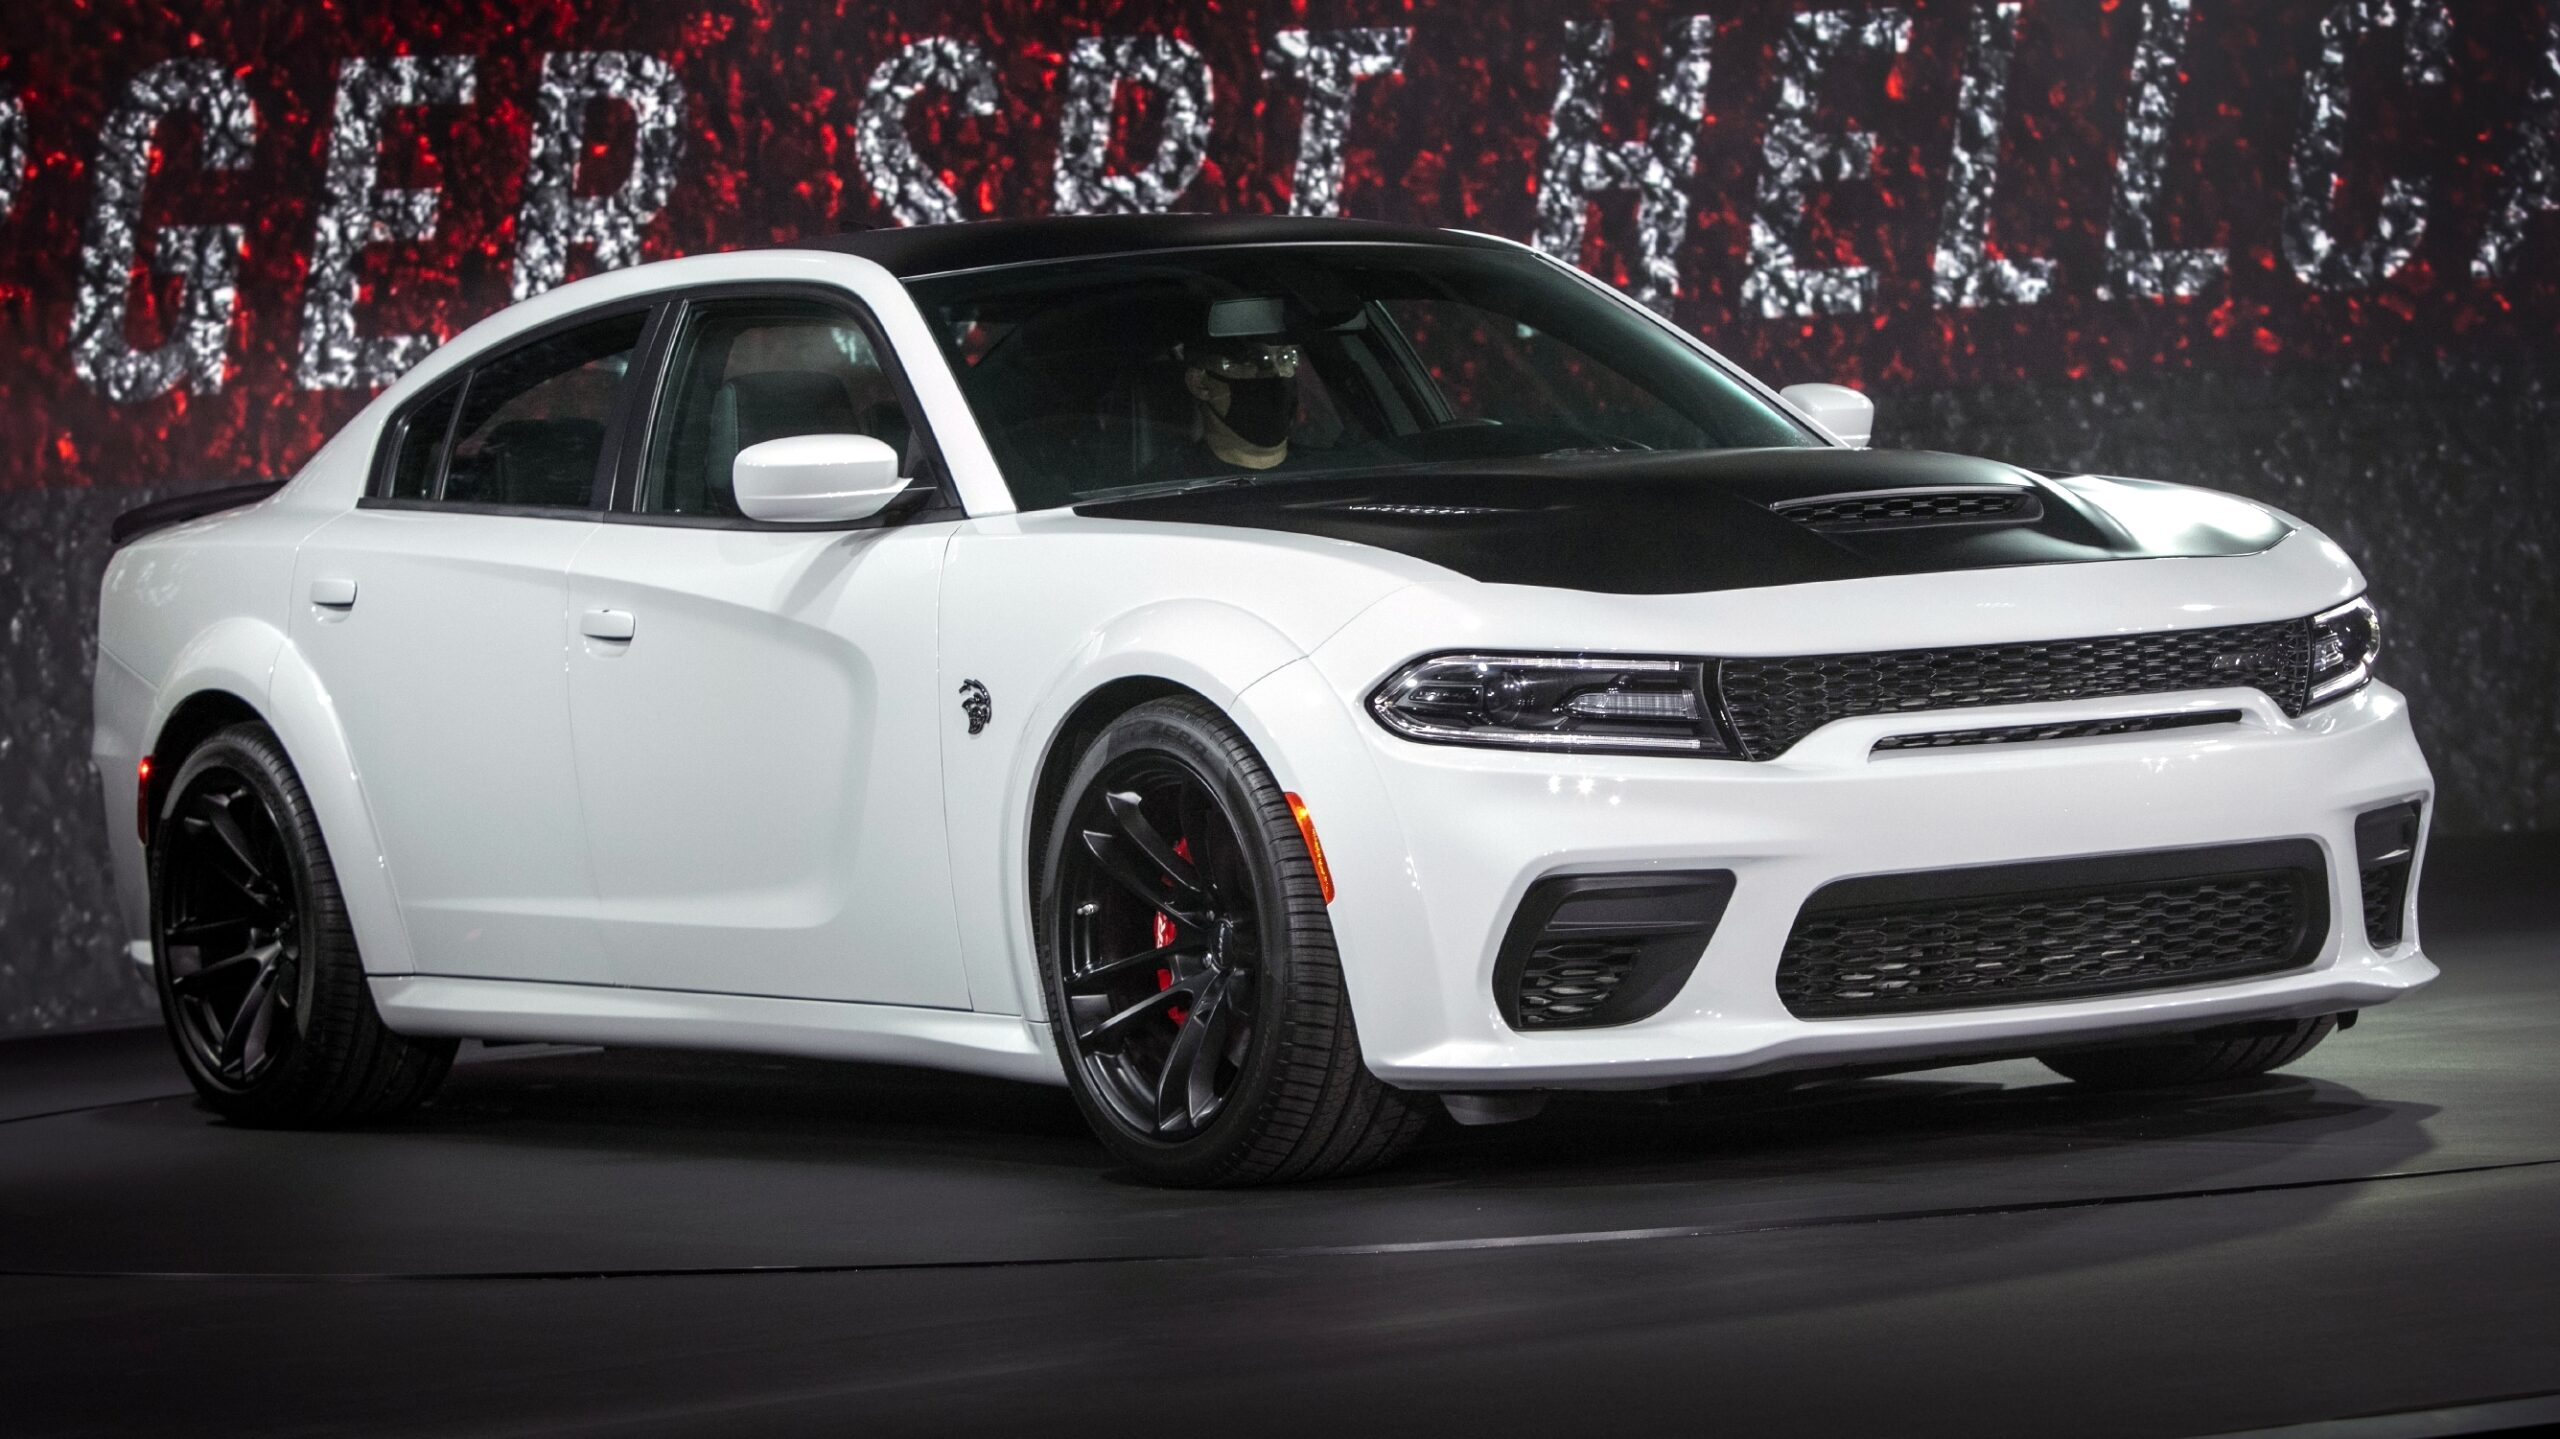 2021 Dodge Charger Srt8 Hellcat Speed Test